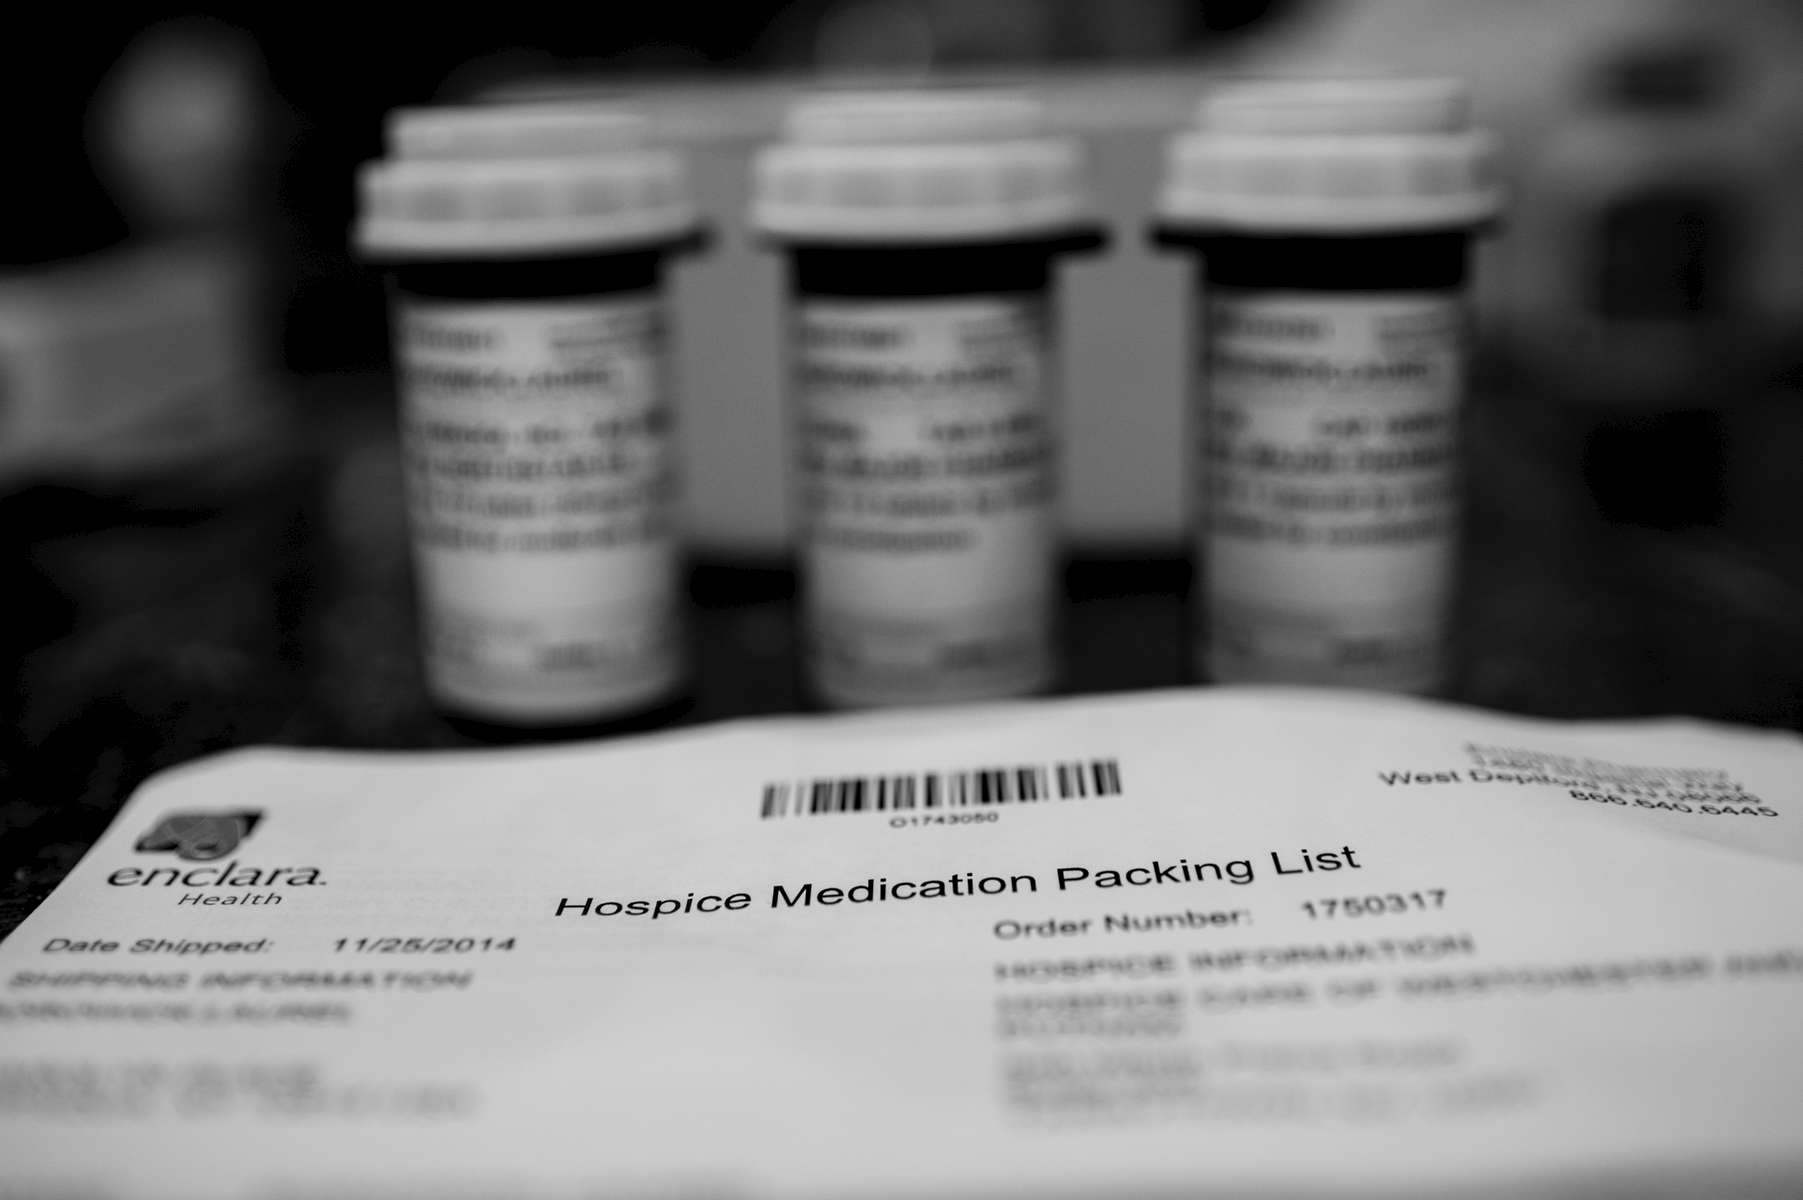 Upon signing up with Hospice, packages began to arrive with unfamiliar medications and materials. Chappaqua, NY. November, 2014.